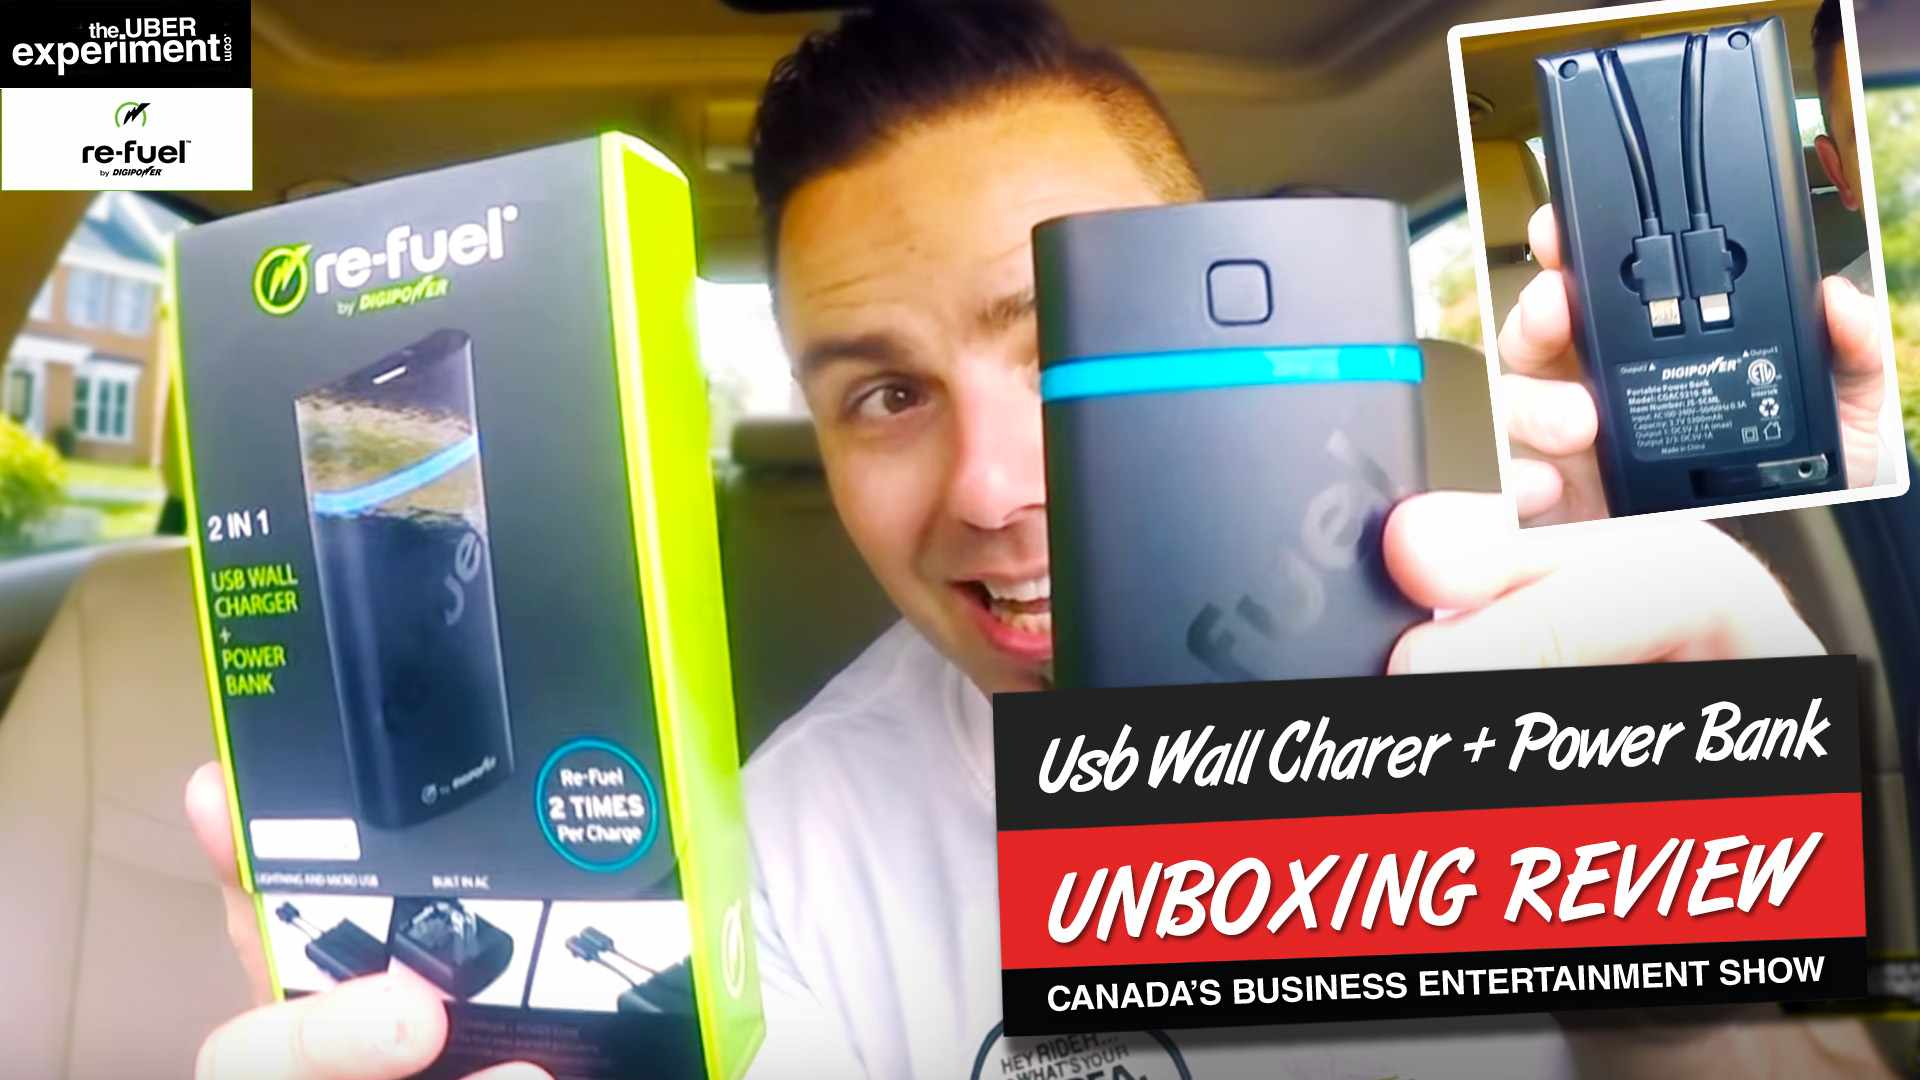 BEST Power Bank Charger Ever - ReFuel 2-in-1 Android & Iphone Wall Charger UNBOXING & Gadget Review